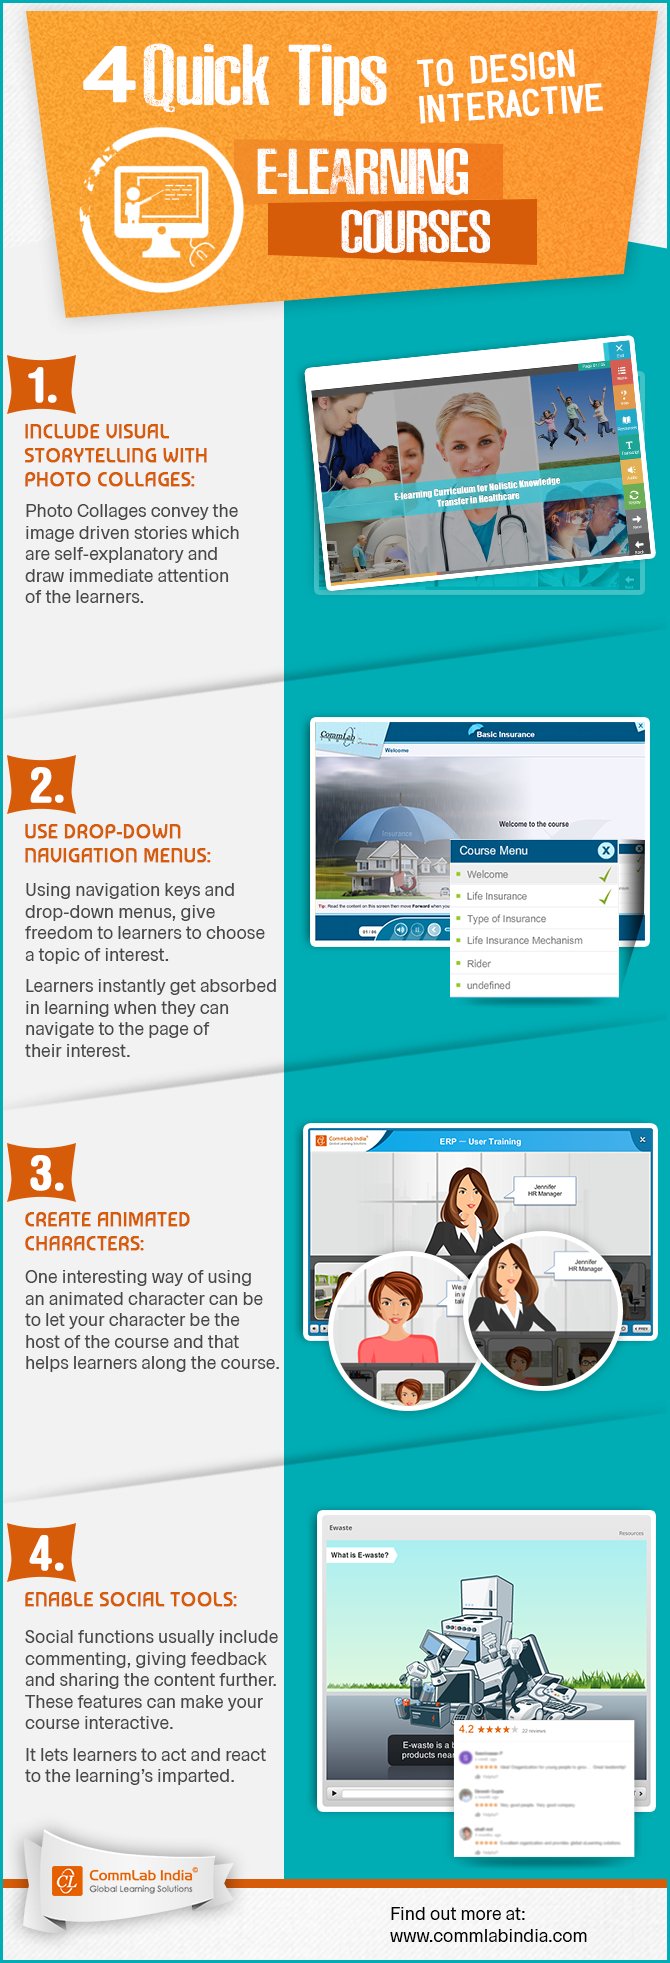 4 Quick Tips to Design Interactive E-learning Courses [Infographic]